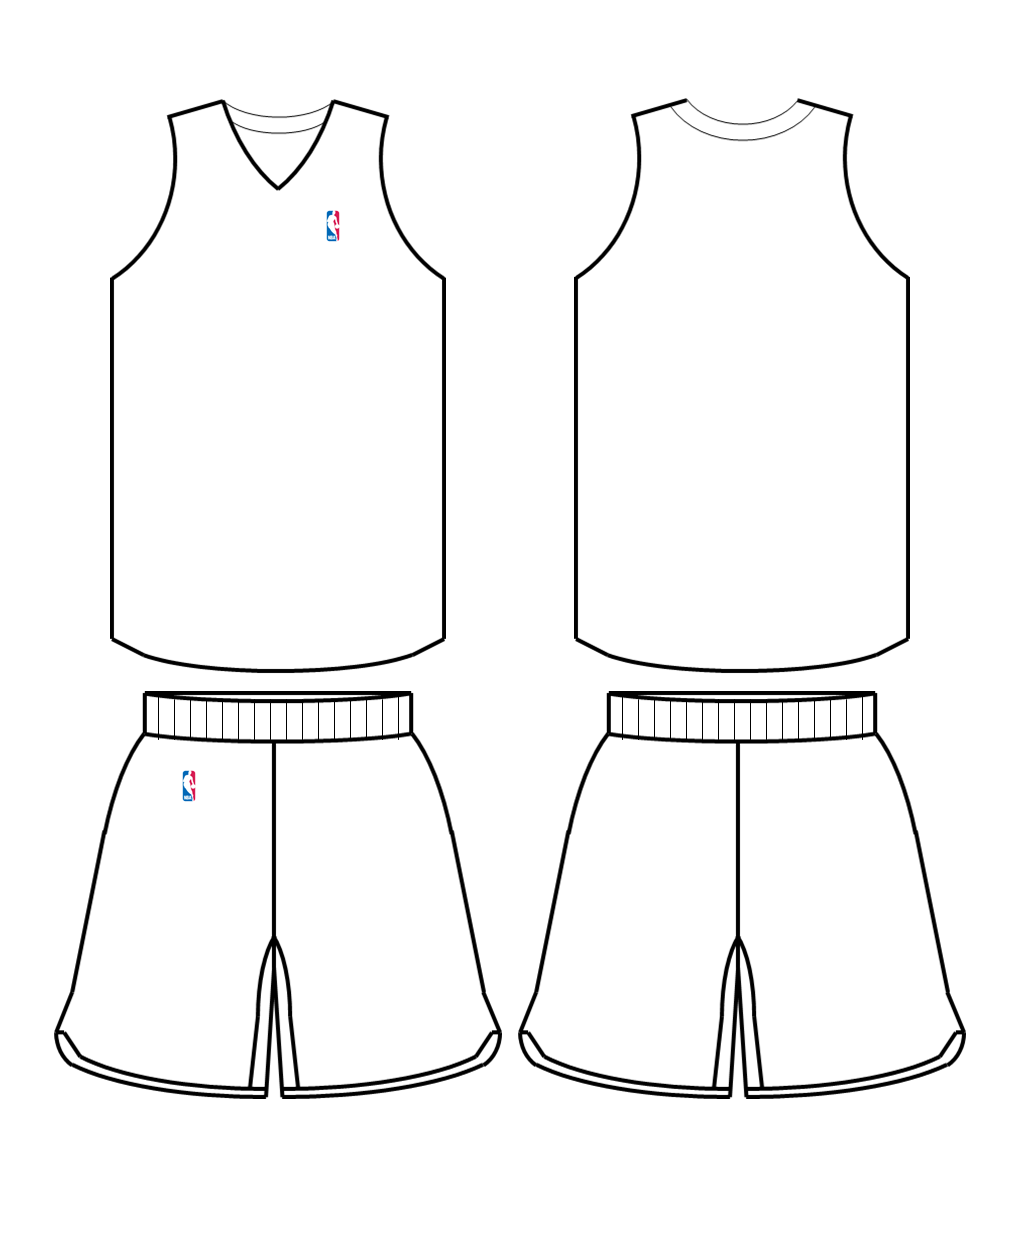 nba jerseys coloring pages - photo#2